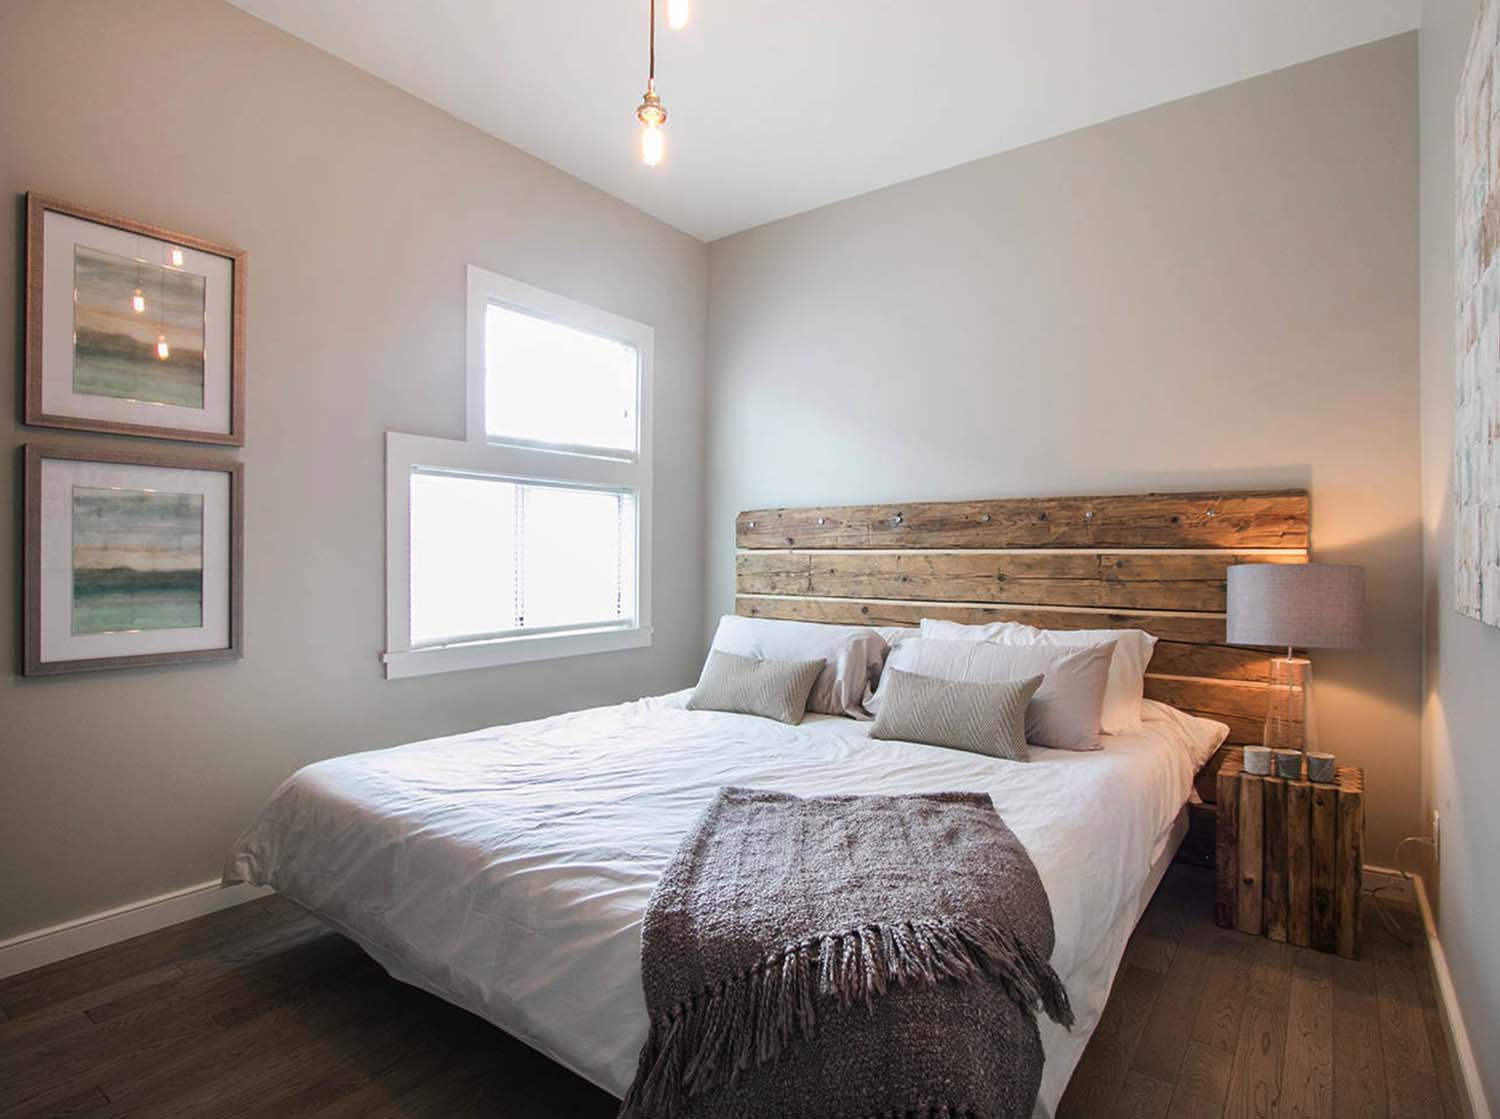 Small Bedrooms For Couples That Are The Perfect Love Nest ...